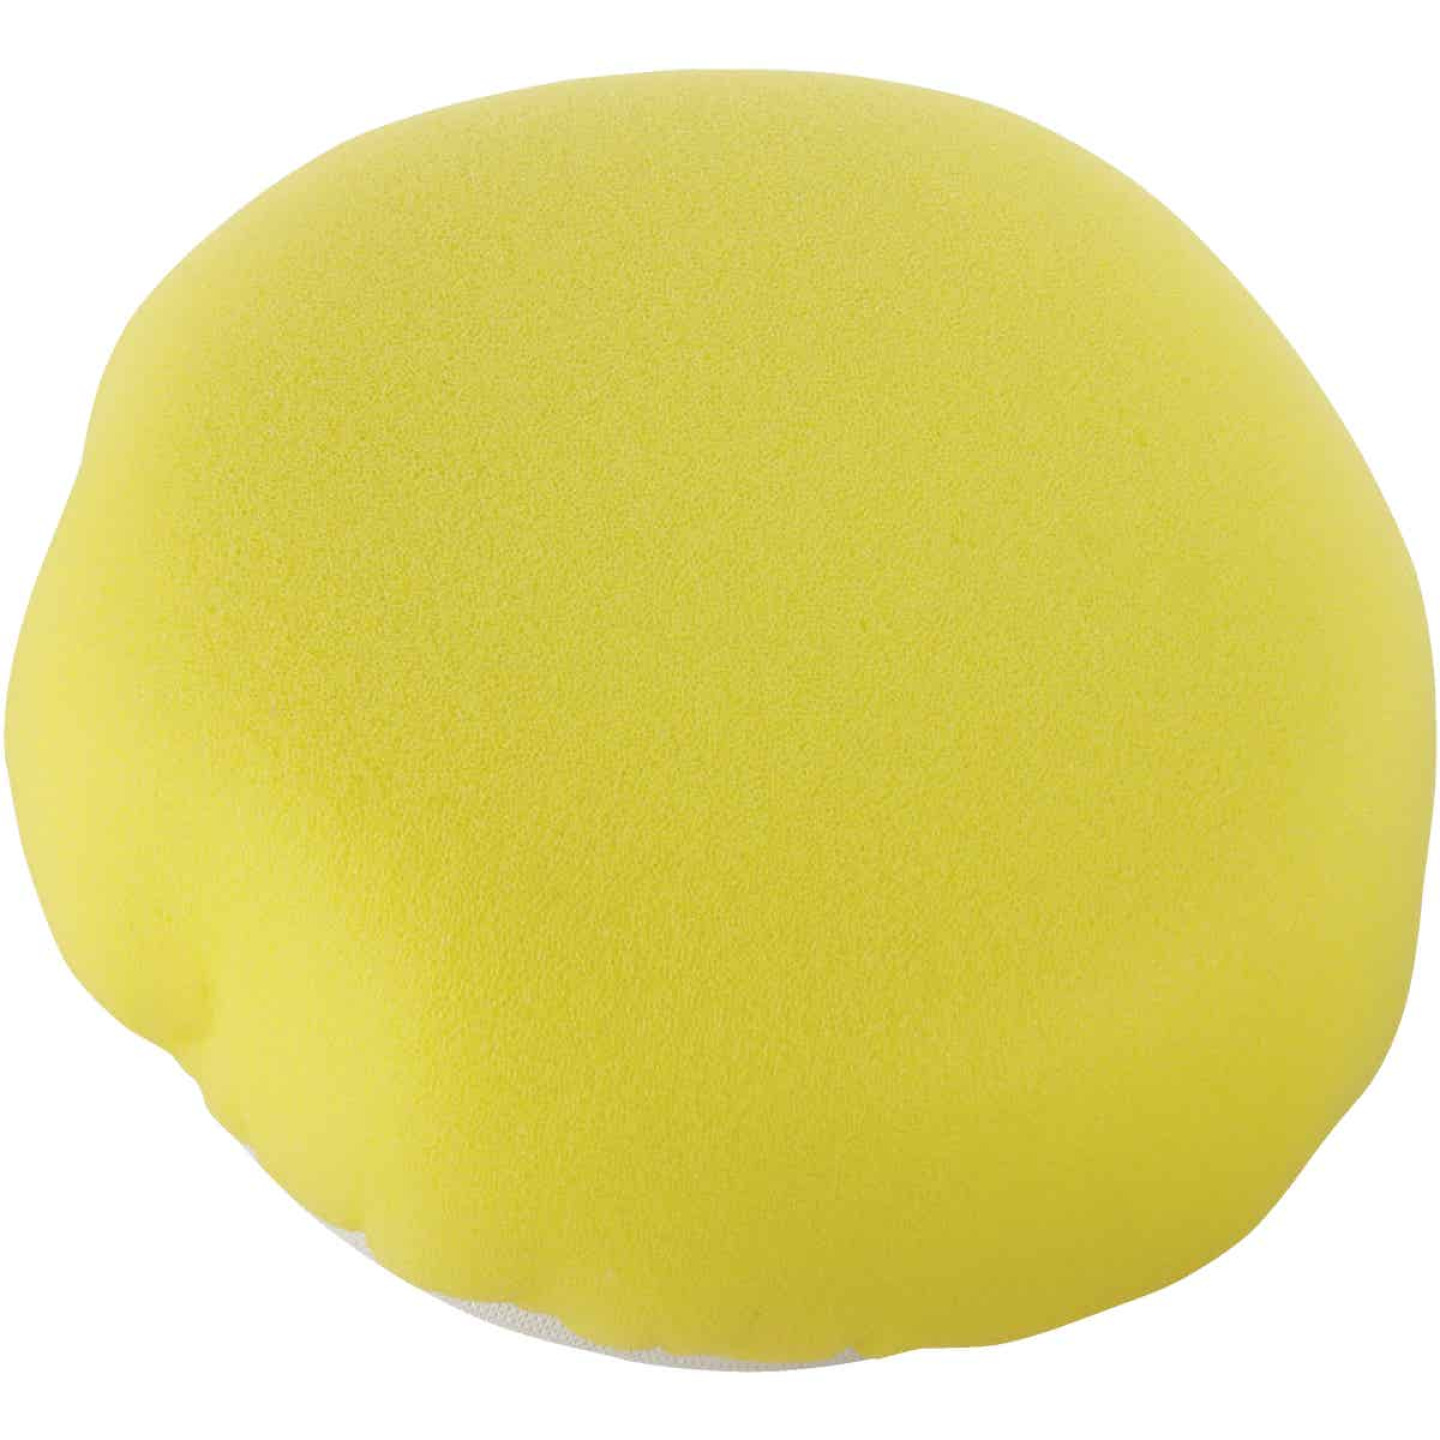 "Auto Spa 5"" To 6"" Washable Foam Polishing Bonnet Image 1"